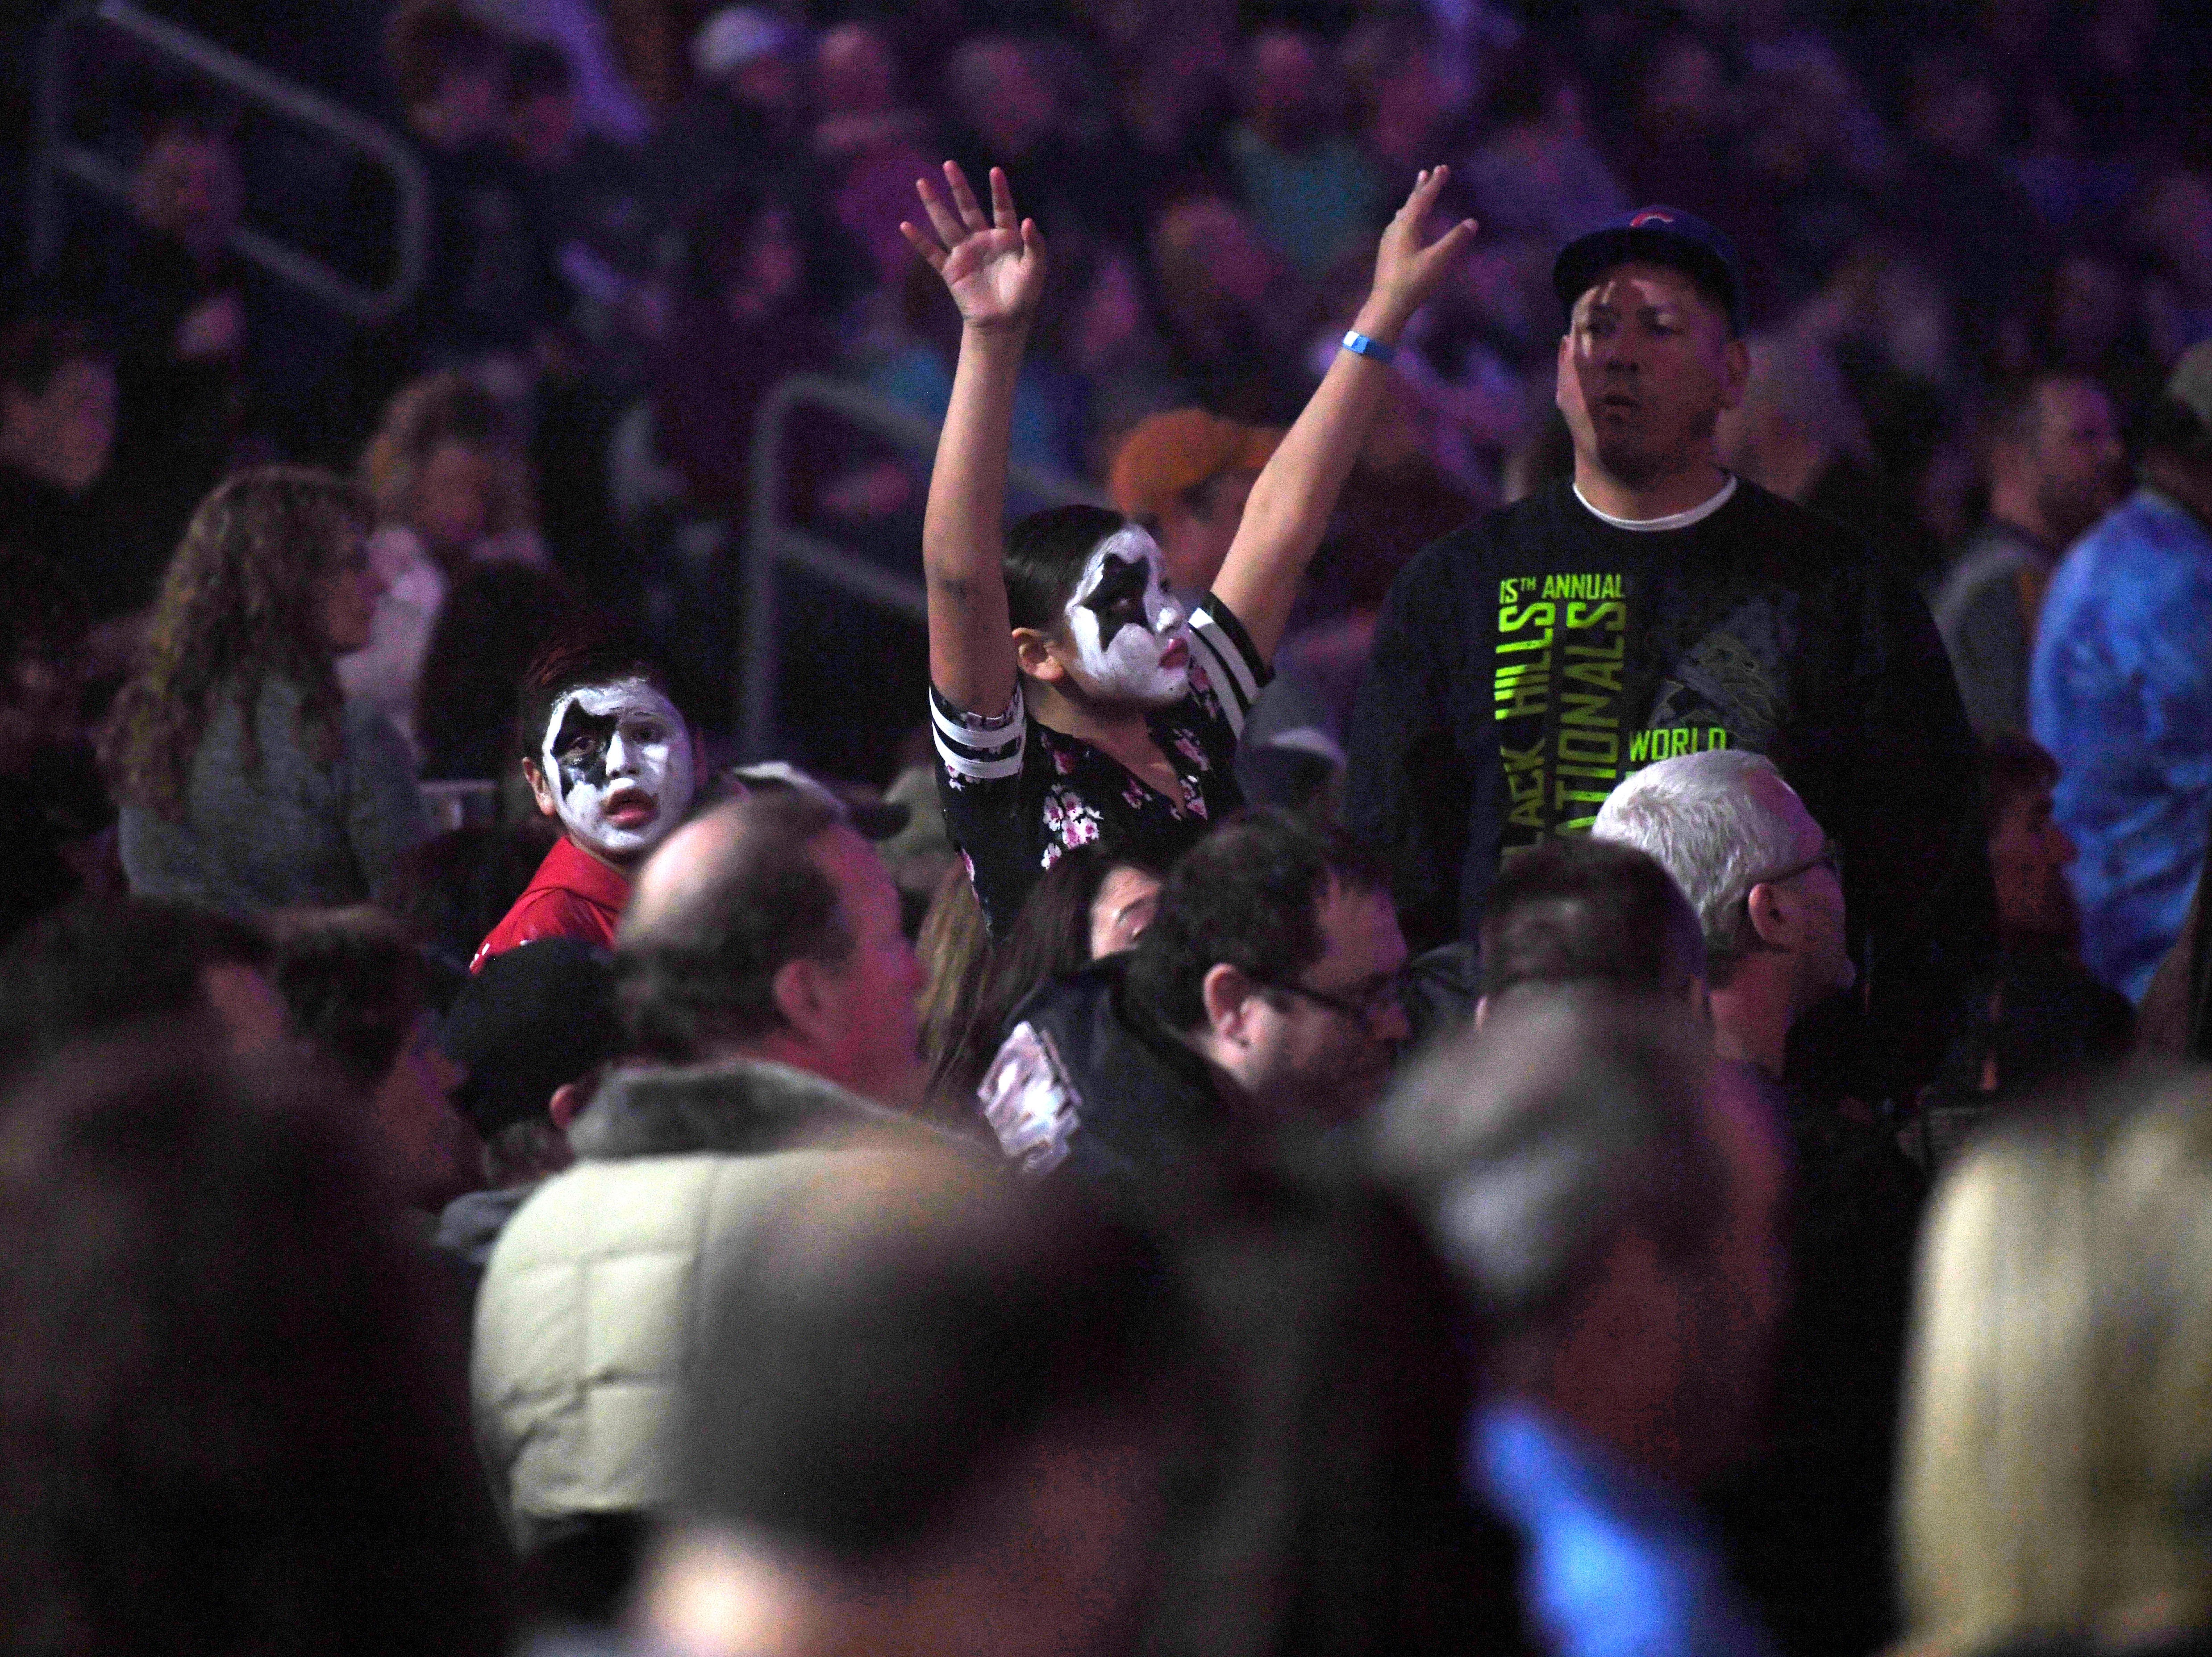 Young KISS fans wear the iconic makeup to the KISS End of the Road World Tour Wednesday, March 6, at the Denny Sanford Premier Center in Sioux Falls. The line up included lead vocalist Paul Stanley, bassist Gene Simmons, guitarist Tommy Thayer and drummer Eric Singer.